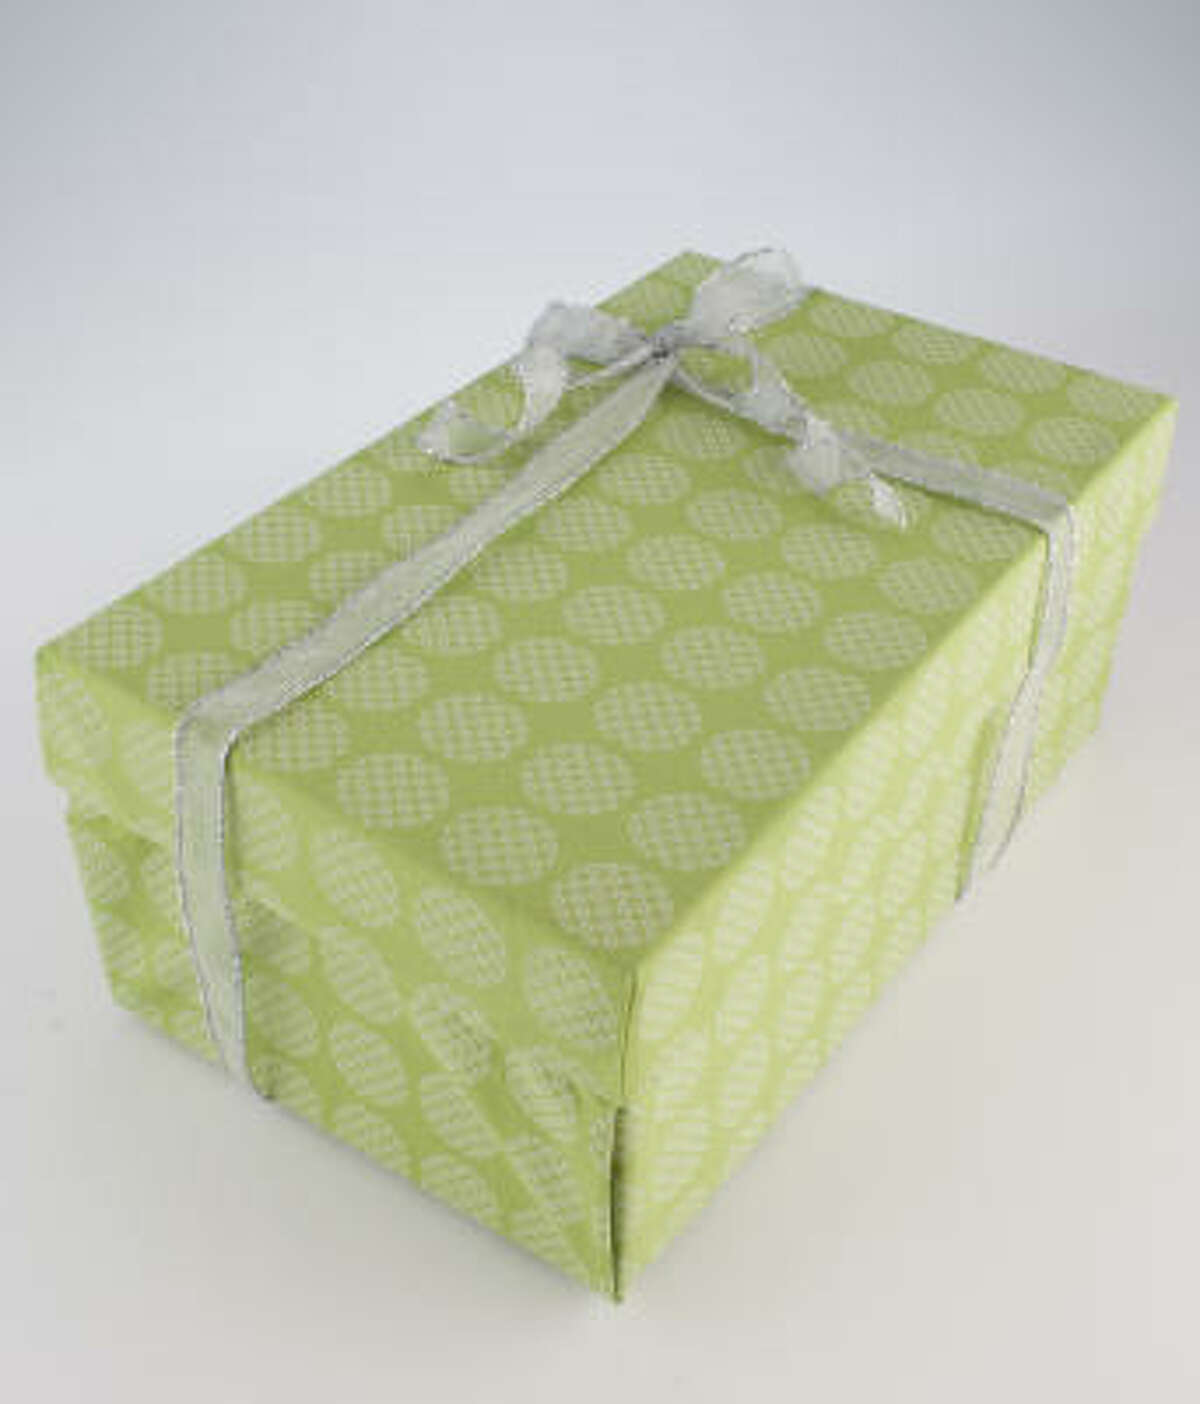 You can also create your own storage box by covering it with cotton fabric.